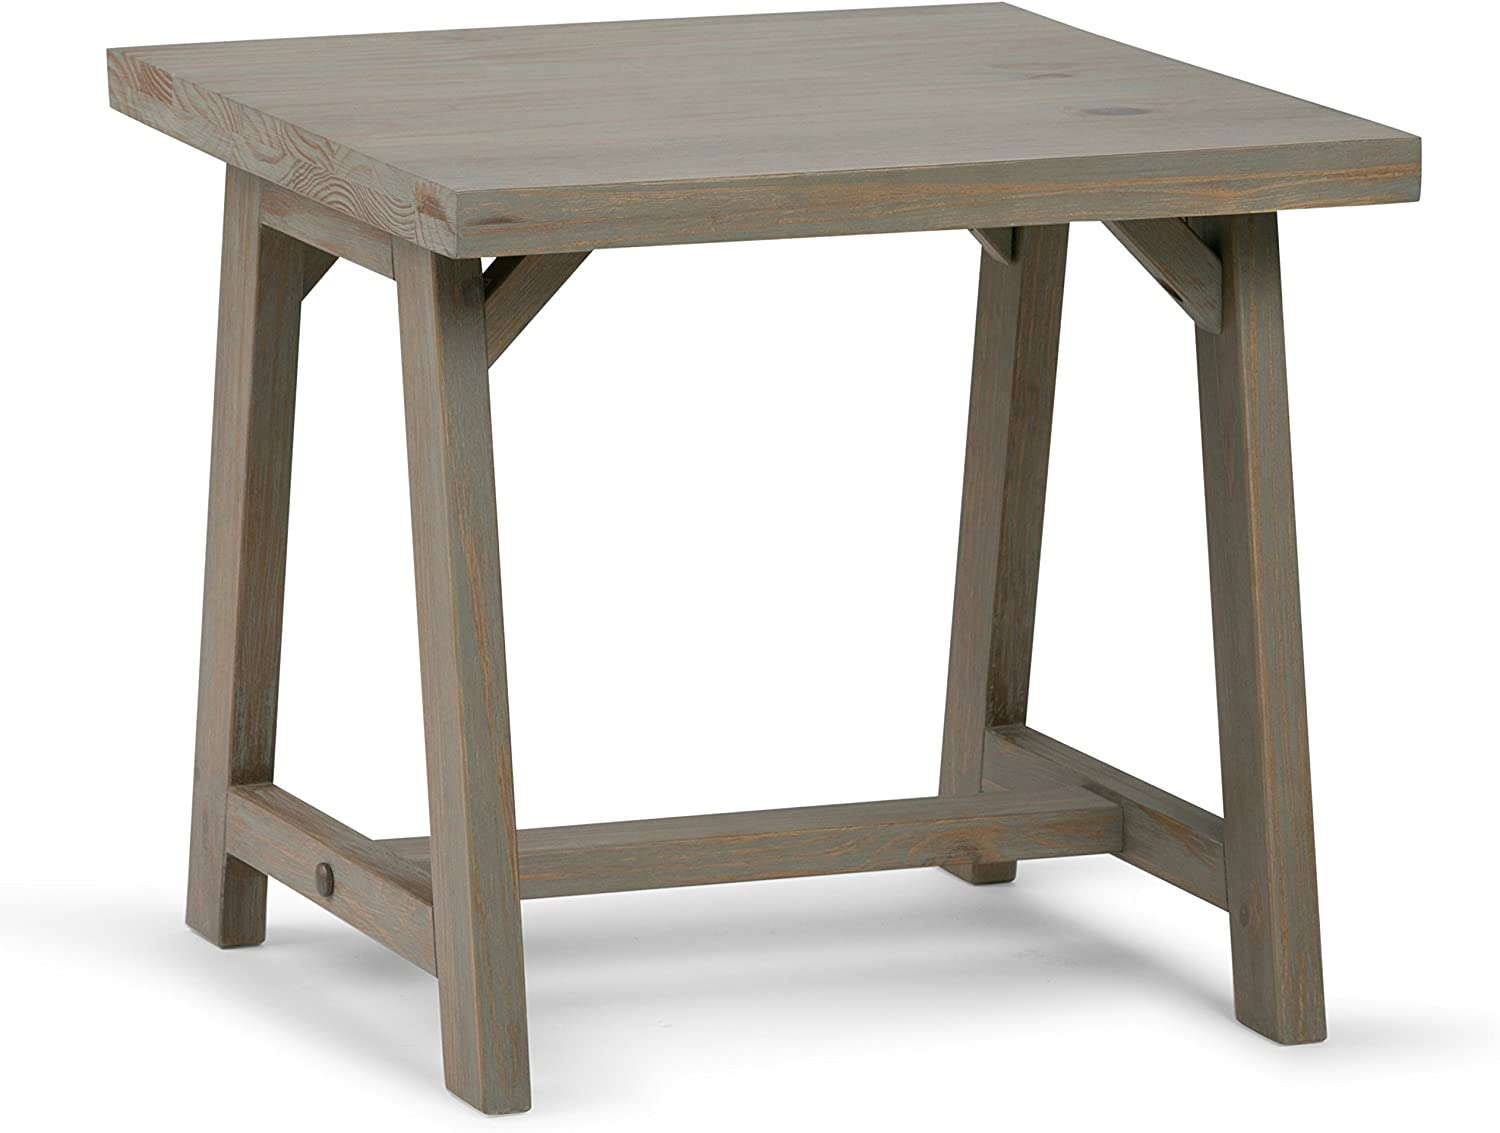 Simpli Home Sawhorse SOLID WOOD 22 inch wide Square Modern Industrial End Side Table in Distressed Grey, for the Living Room and Bedroom